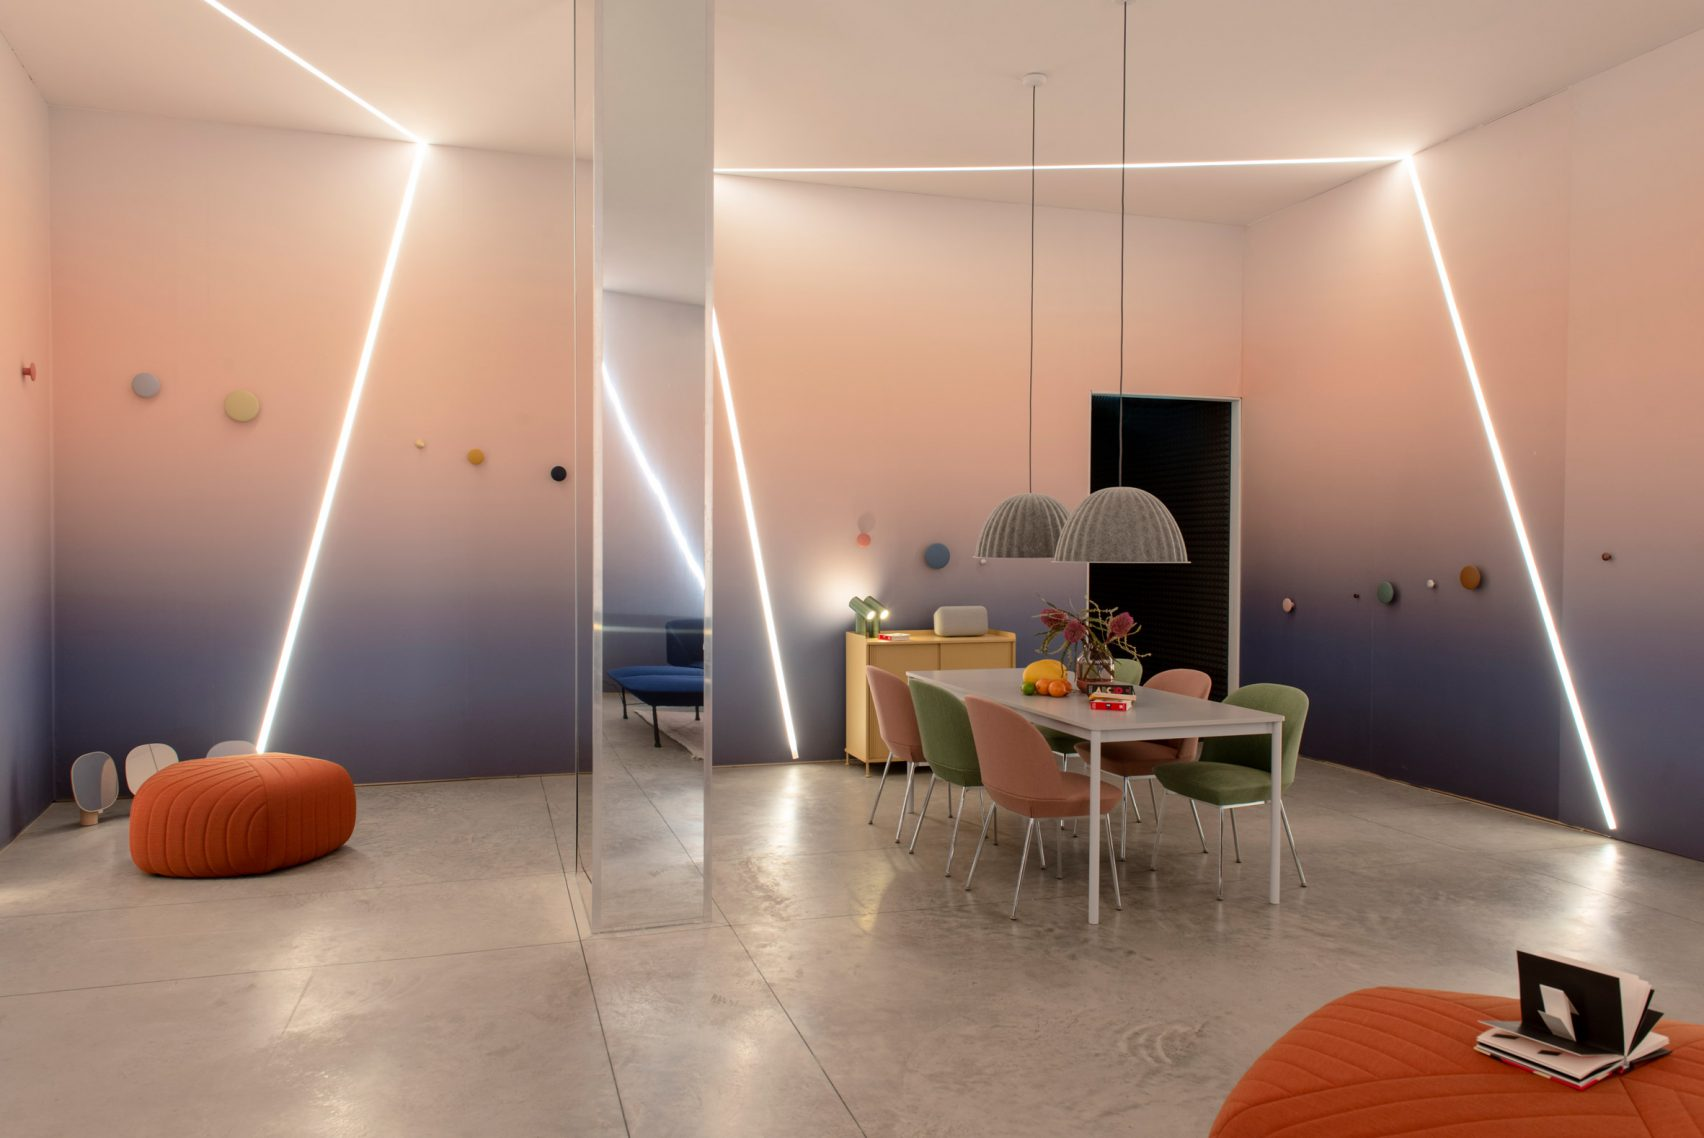 The second room, Vital, has a more playful design